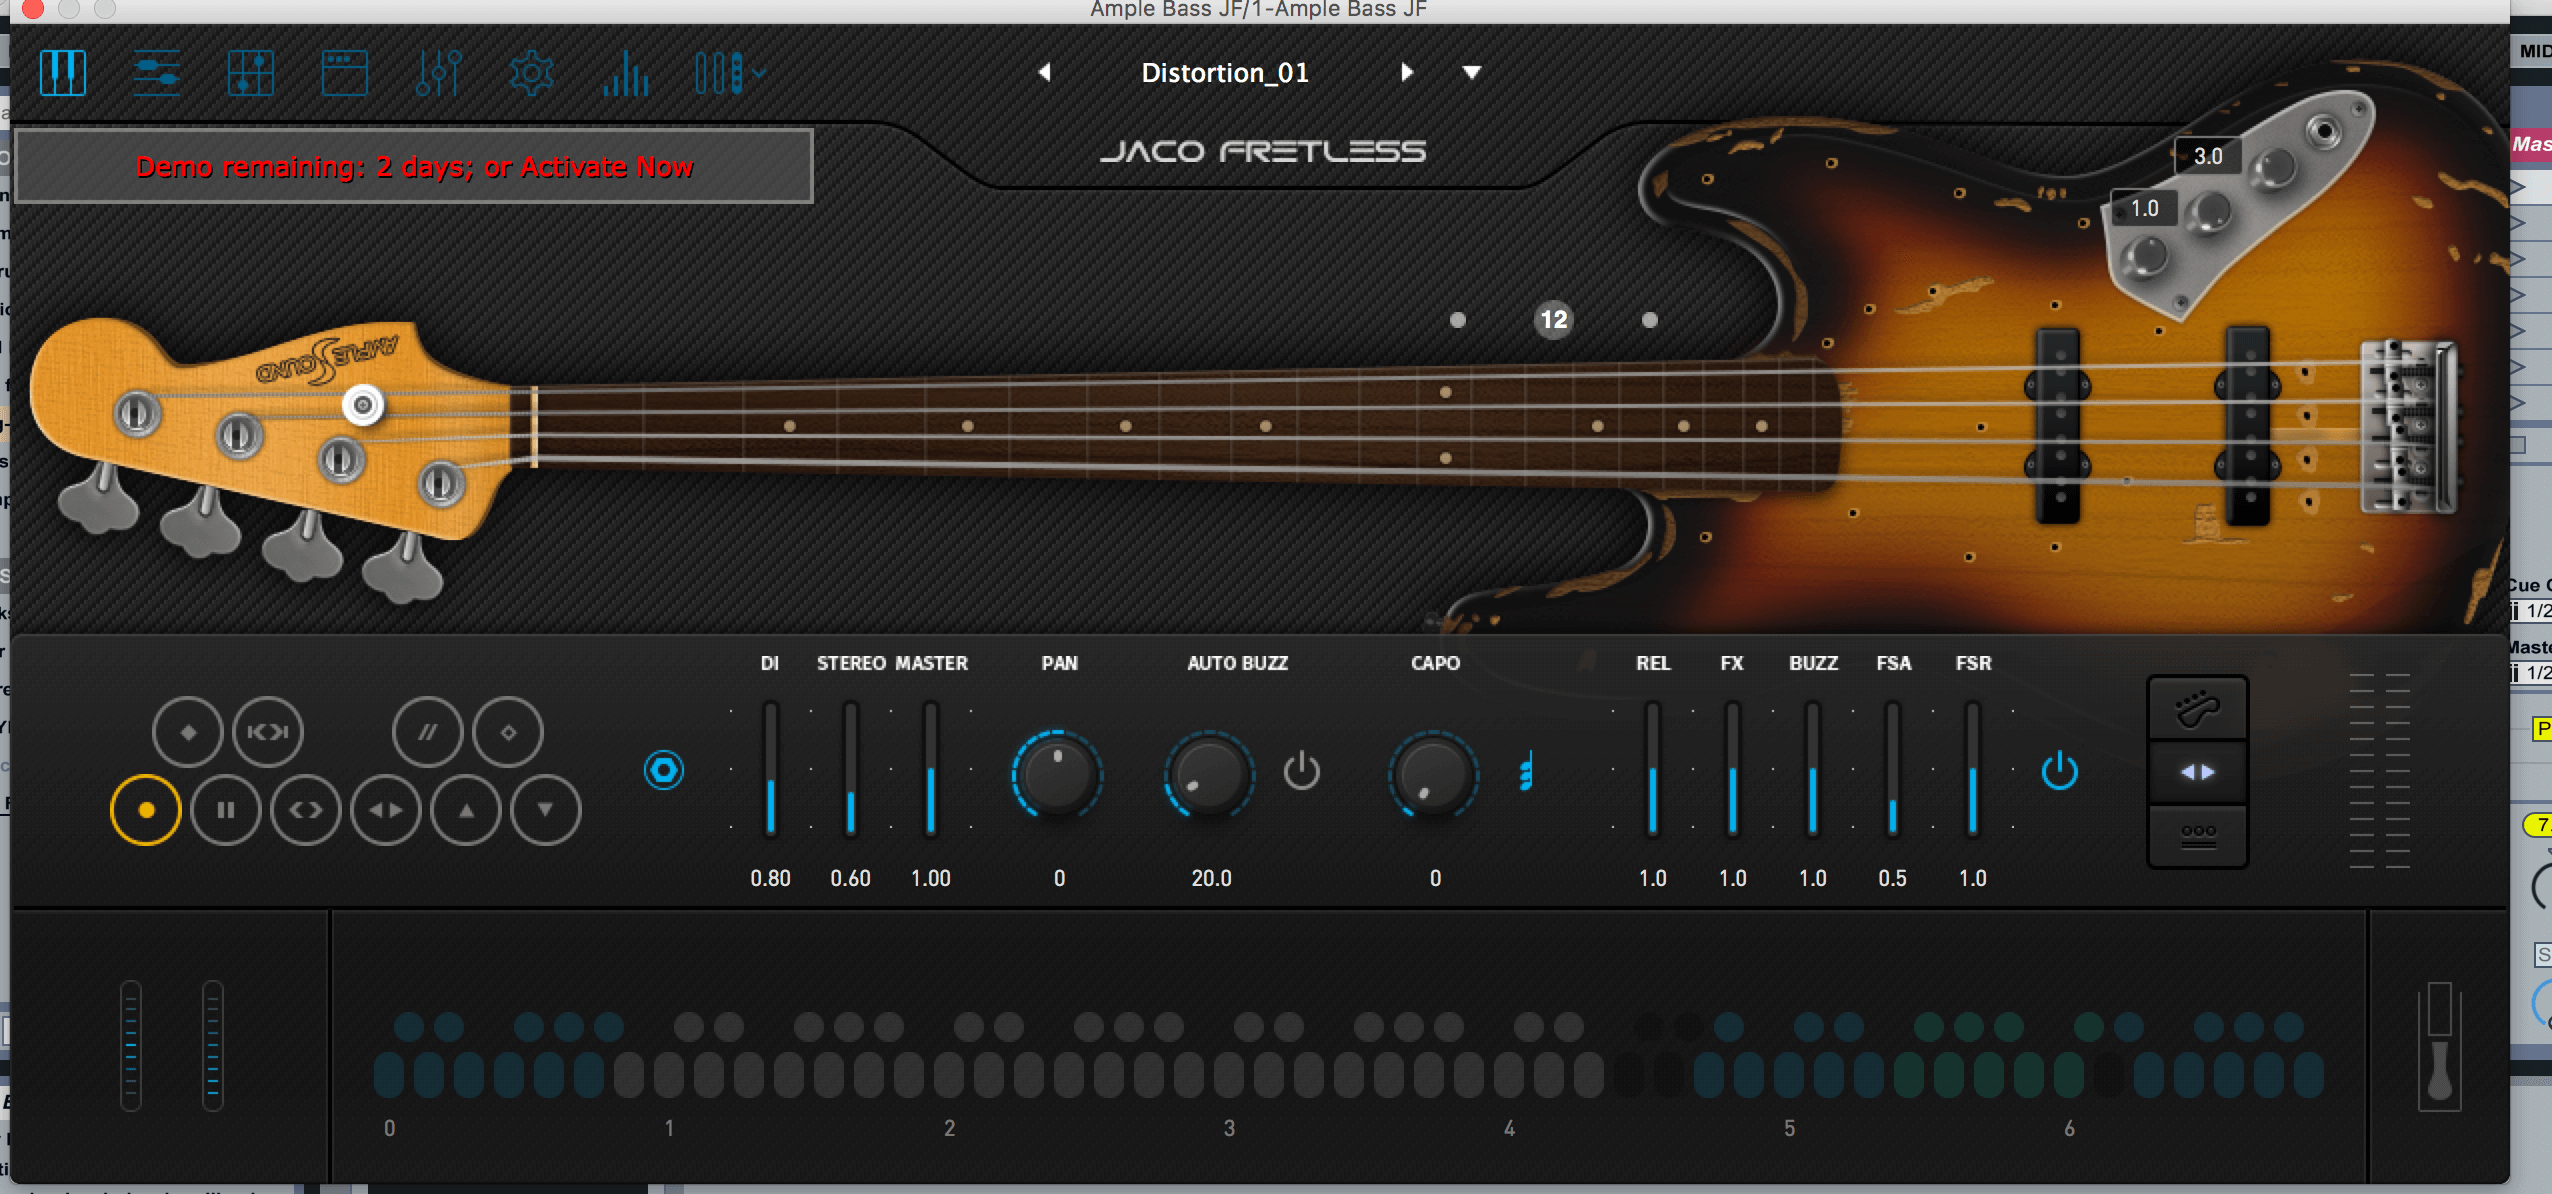 Interface of Ample Bass Guitar VST